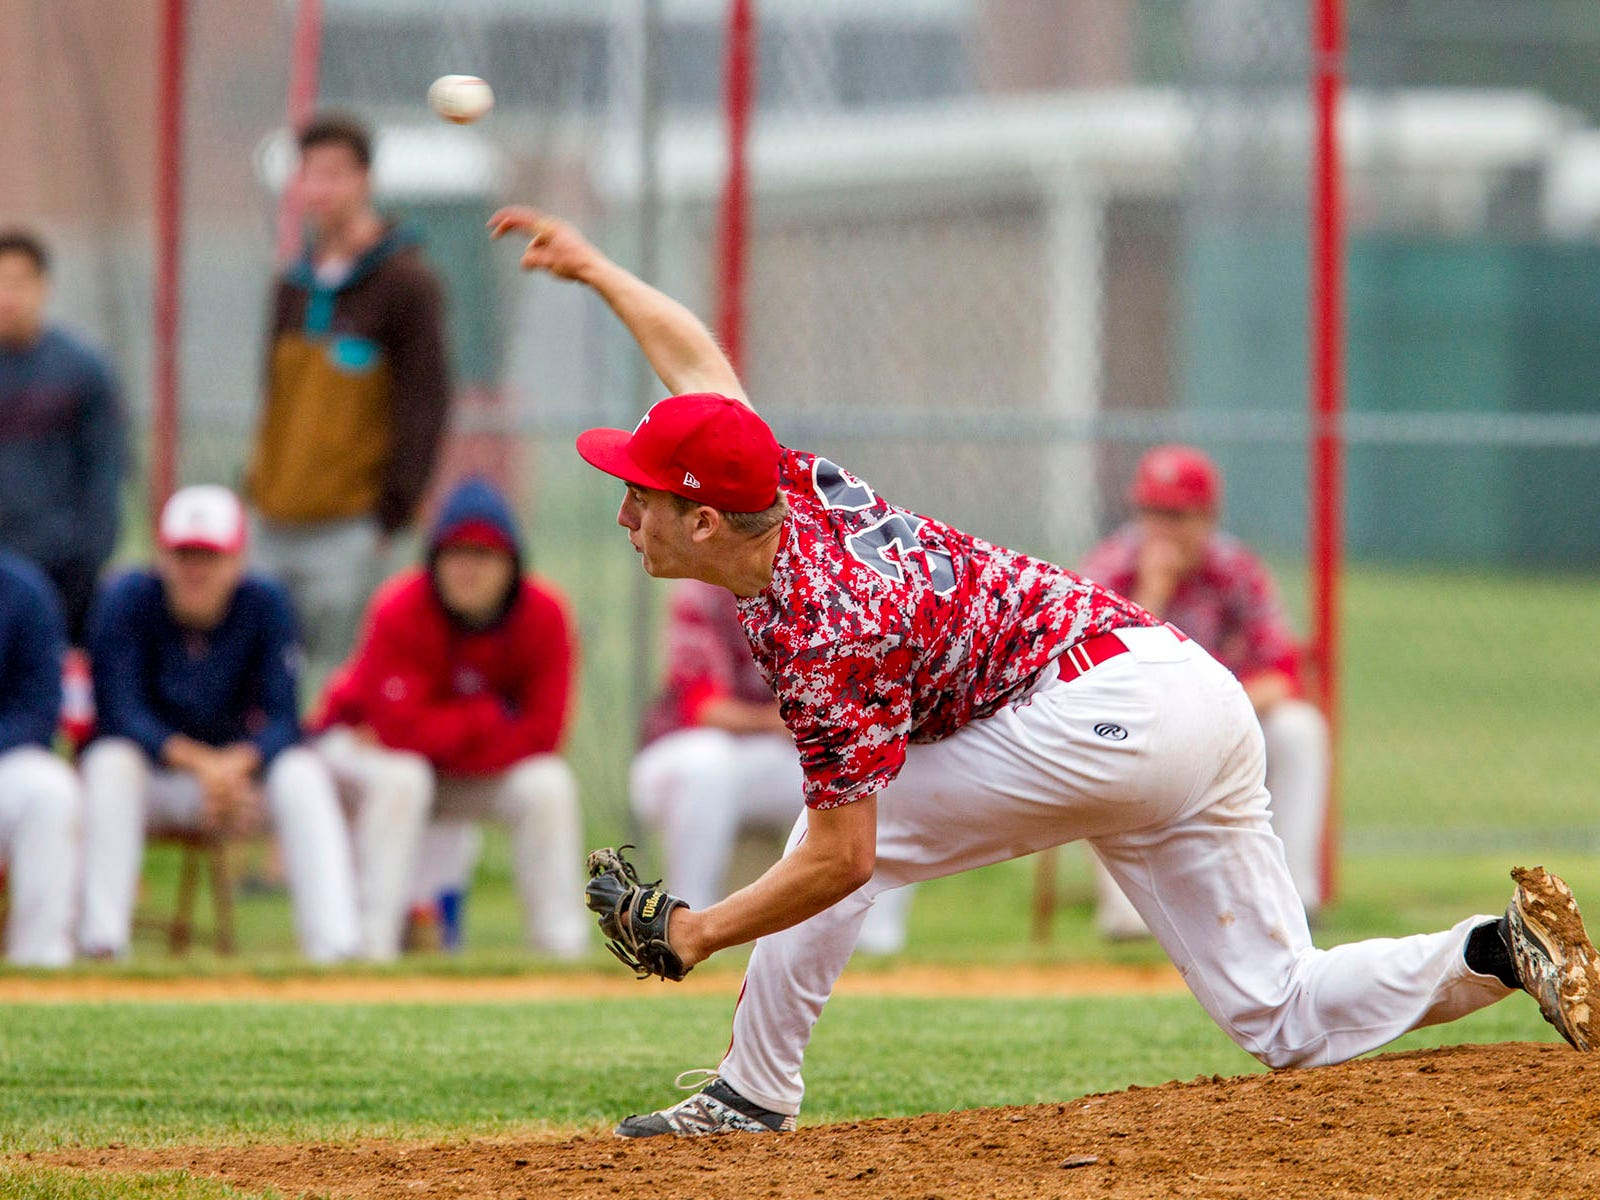 Ocean senior right-hander Blake Demeter struck out a career-high 17 Monday in the Spartans' 4-0 win over Jackson Liberty in a NJSIAA Central Group III first-round game.